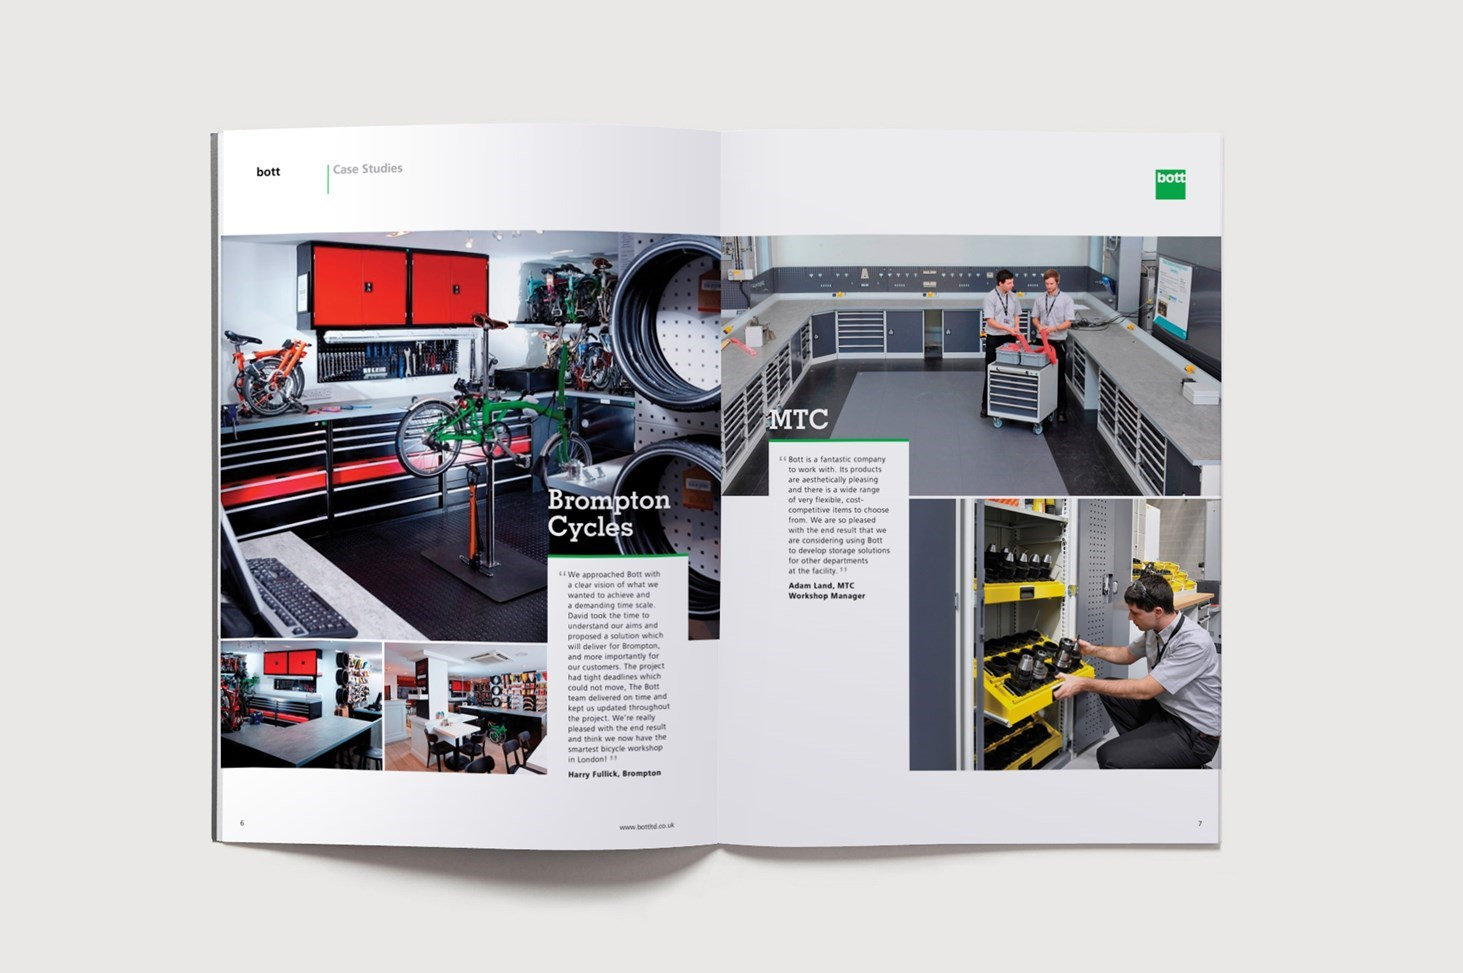 Case studies spread from the Bott catalogue